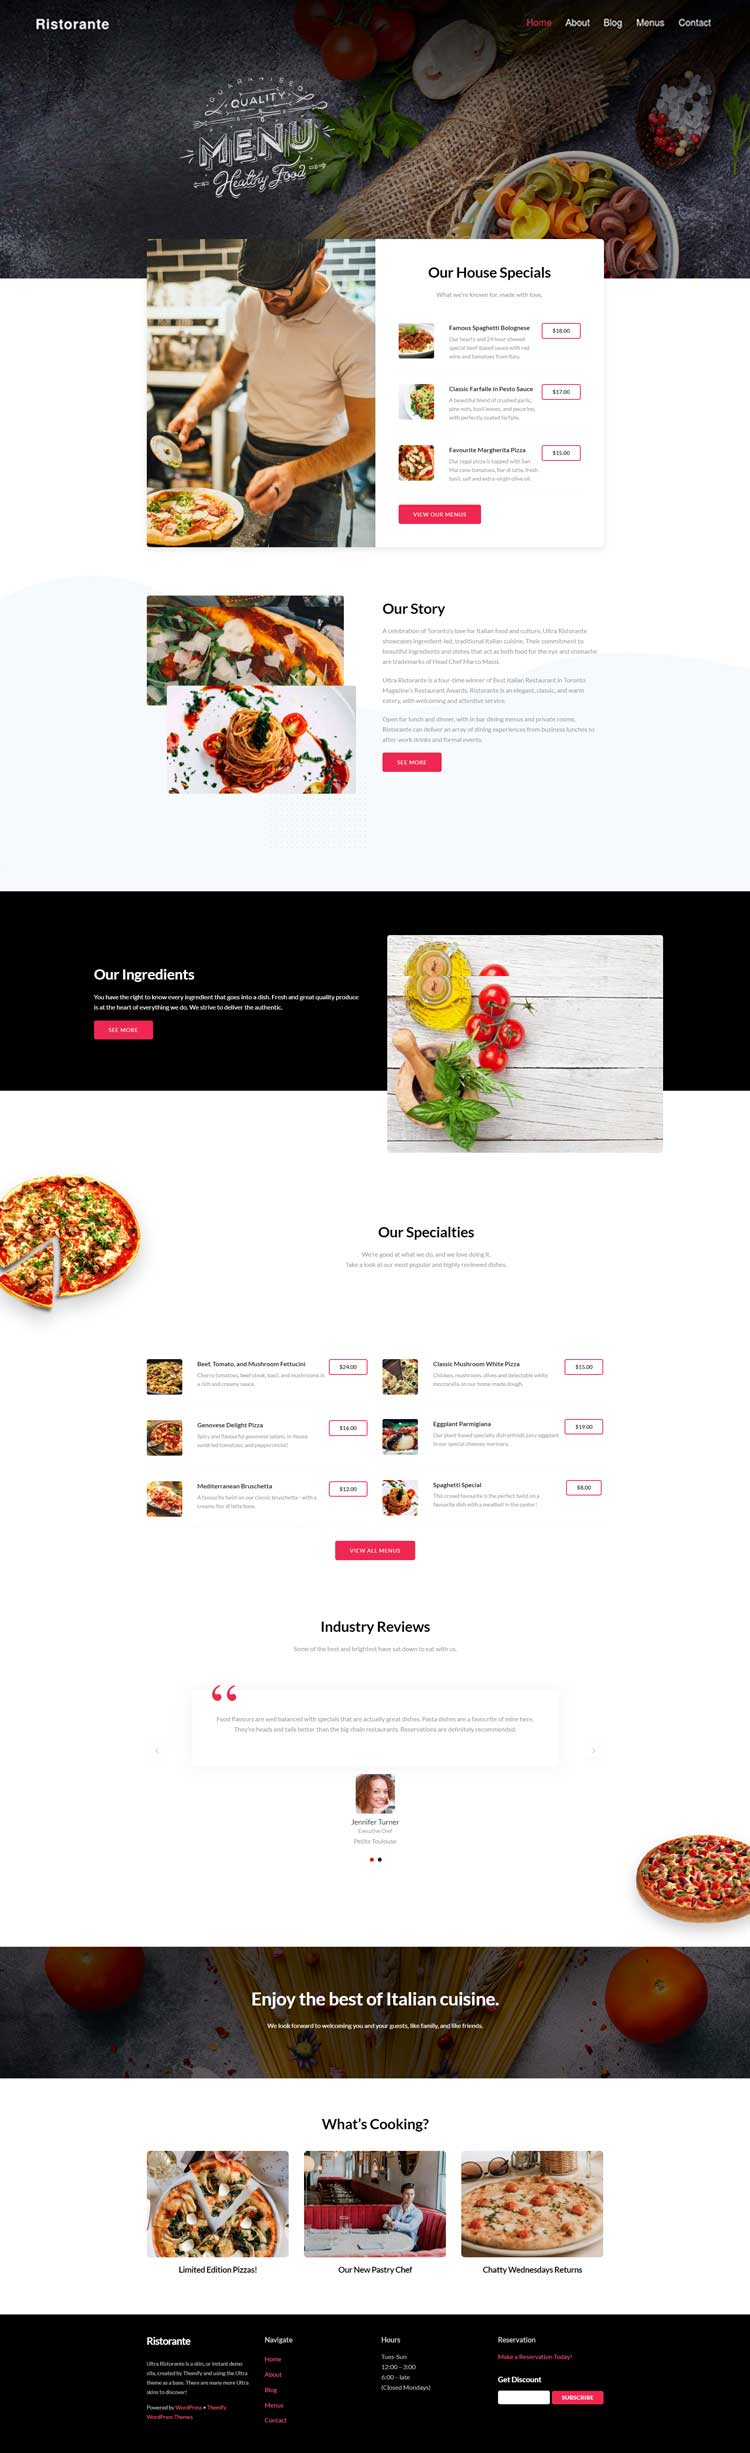 Ristorante-Skin-for-Ultra-WordPress-Theme-Preview